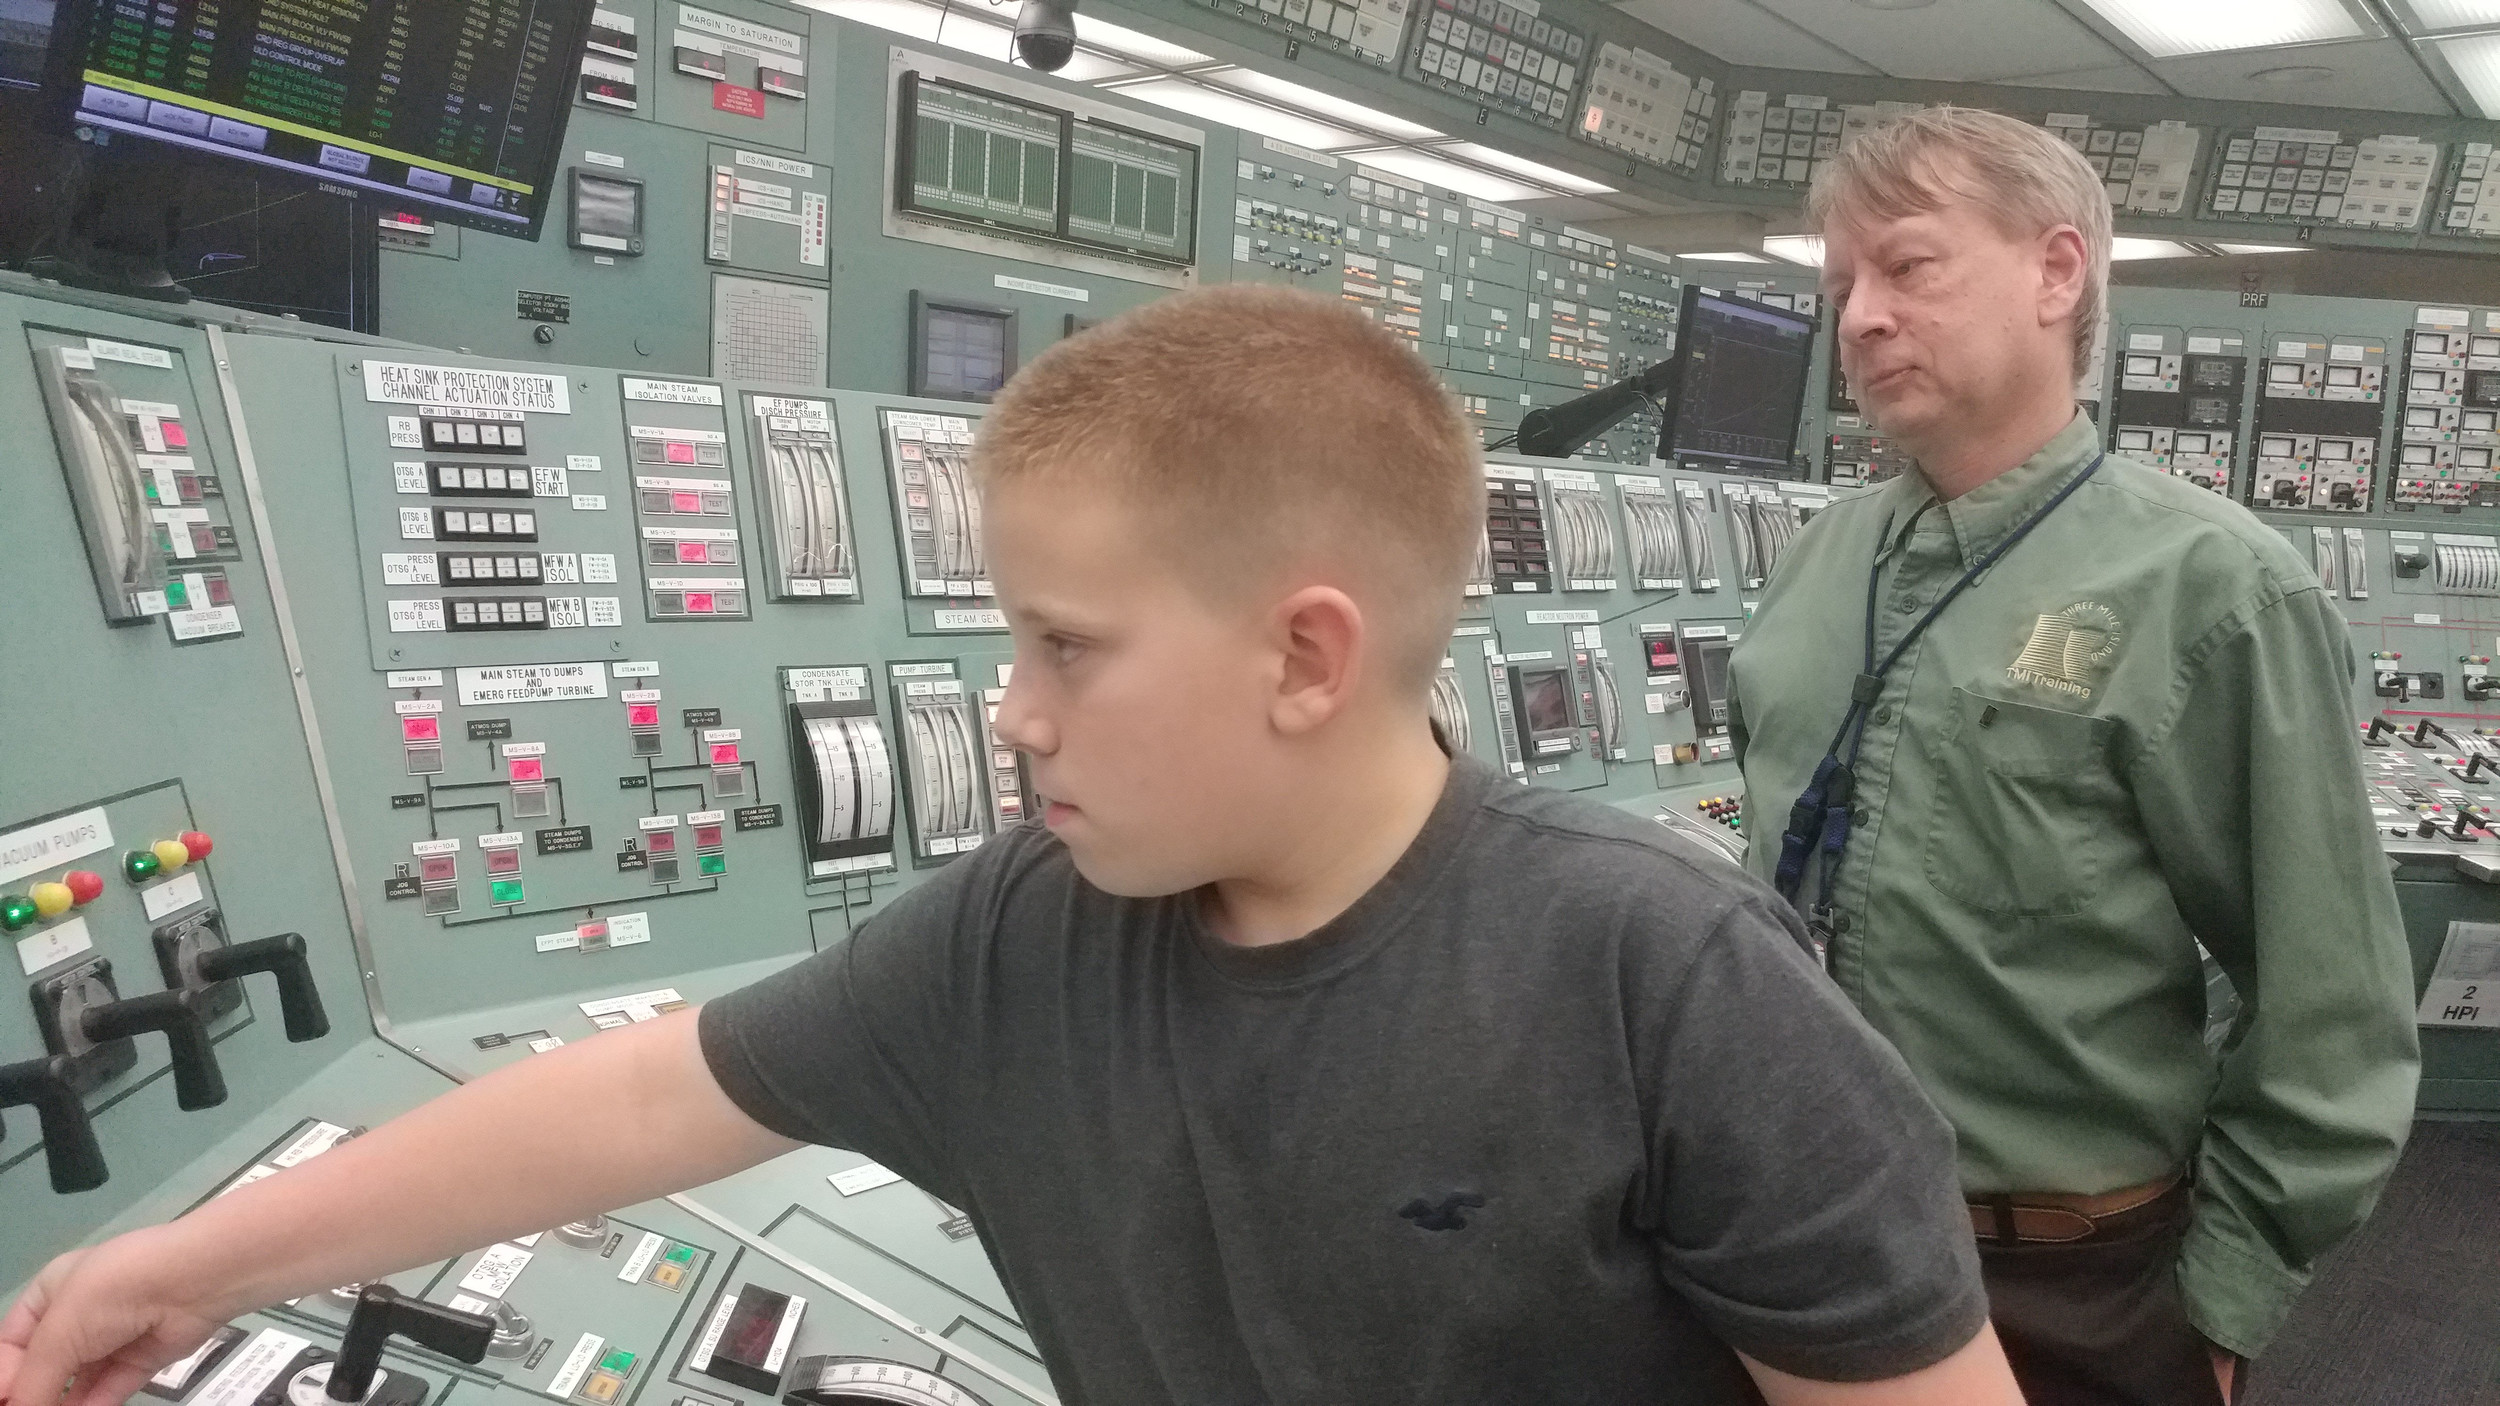 Greyson Albert, 9, demonstrates how to shut down the plant during a simulation at the TMI open house event on Thursday, Sept. 7 as John Tesmer watches.